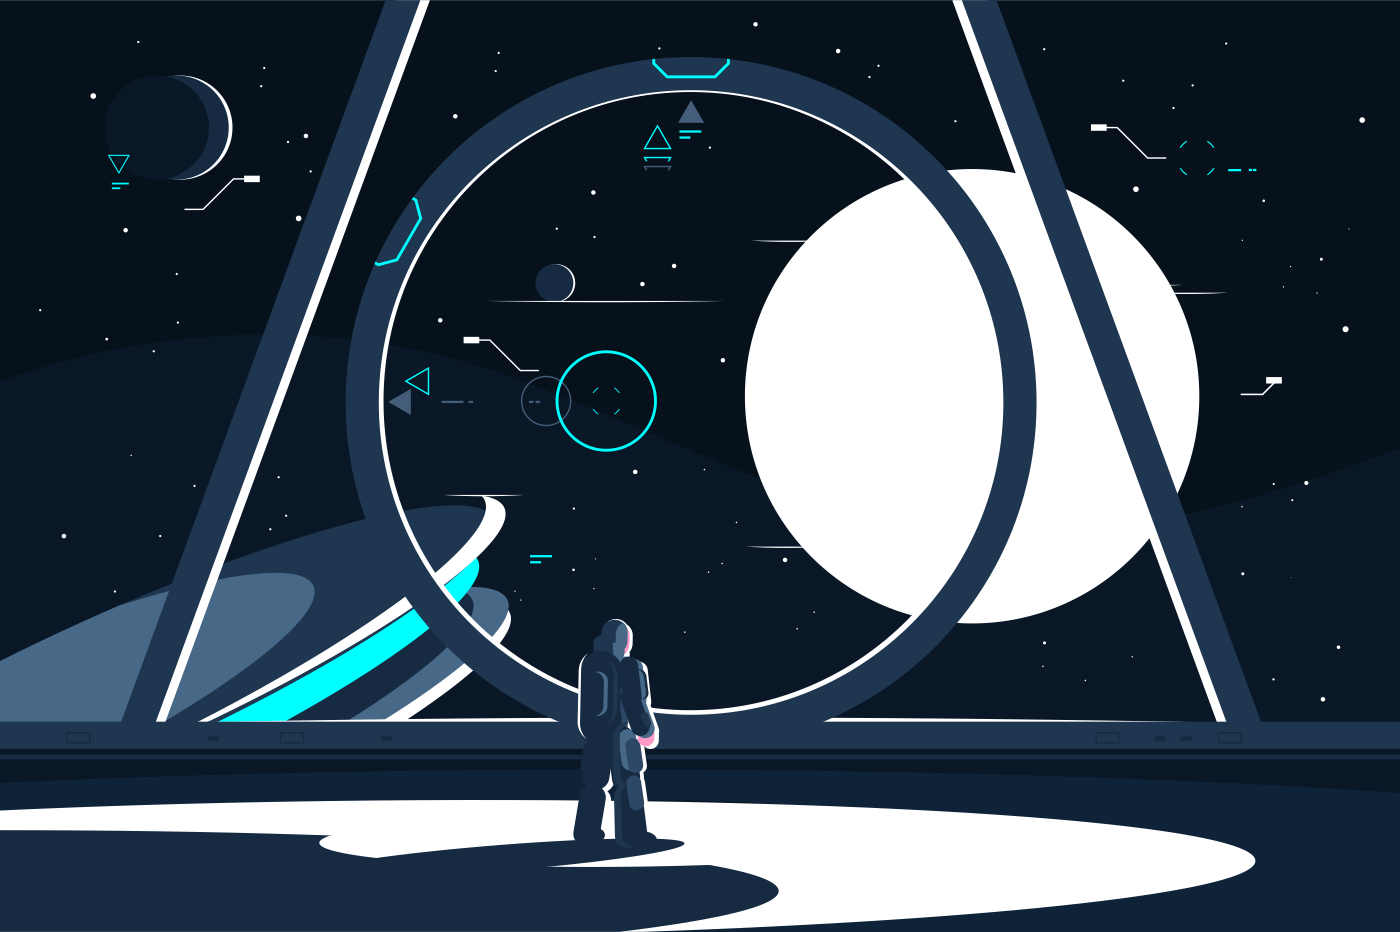 Spacesuit astronaut in spaceship looking at moon. Space station interior. Flat. Vector illustration.